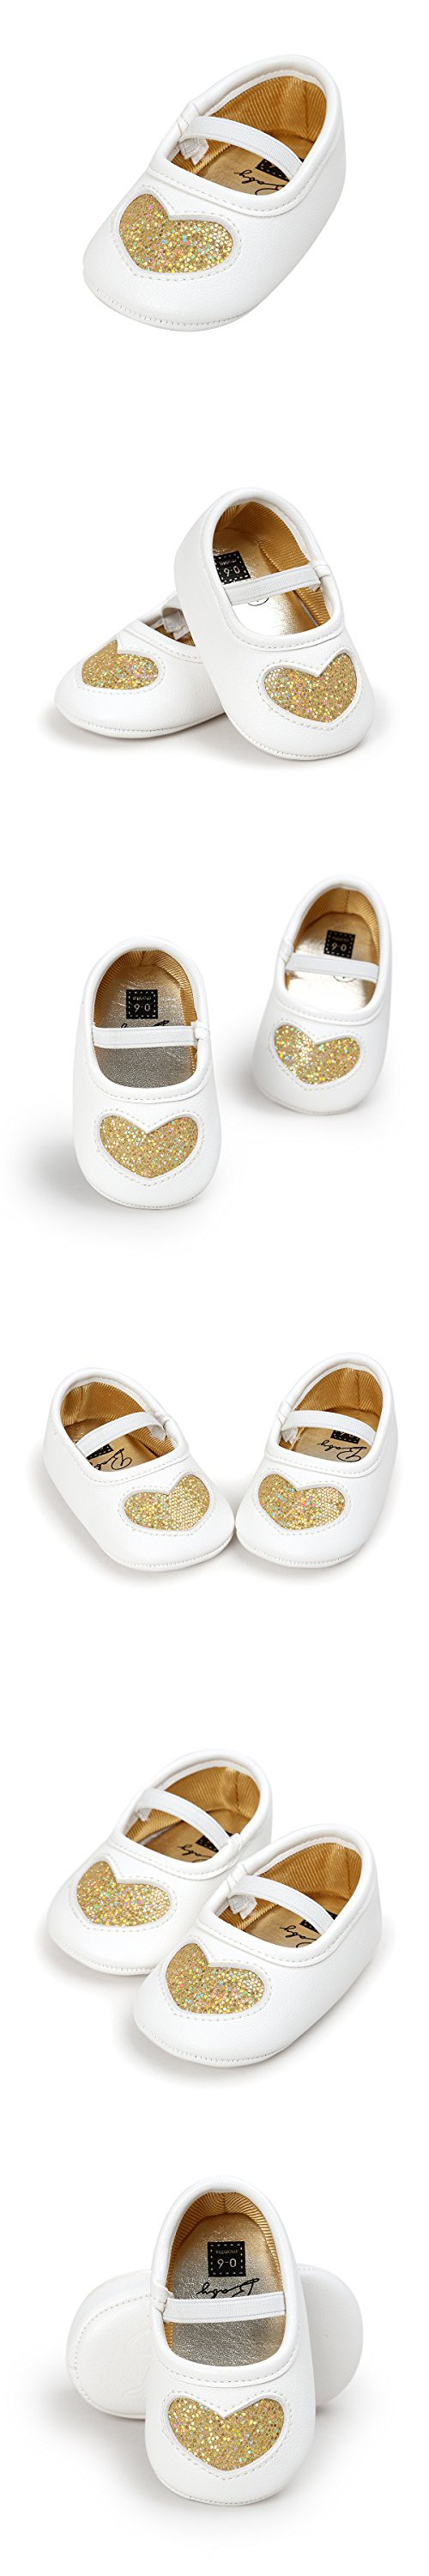 RVROVIC Baby Girl Moccasins Princess Sparkly Premium Lightweight Soft Sole Shoes